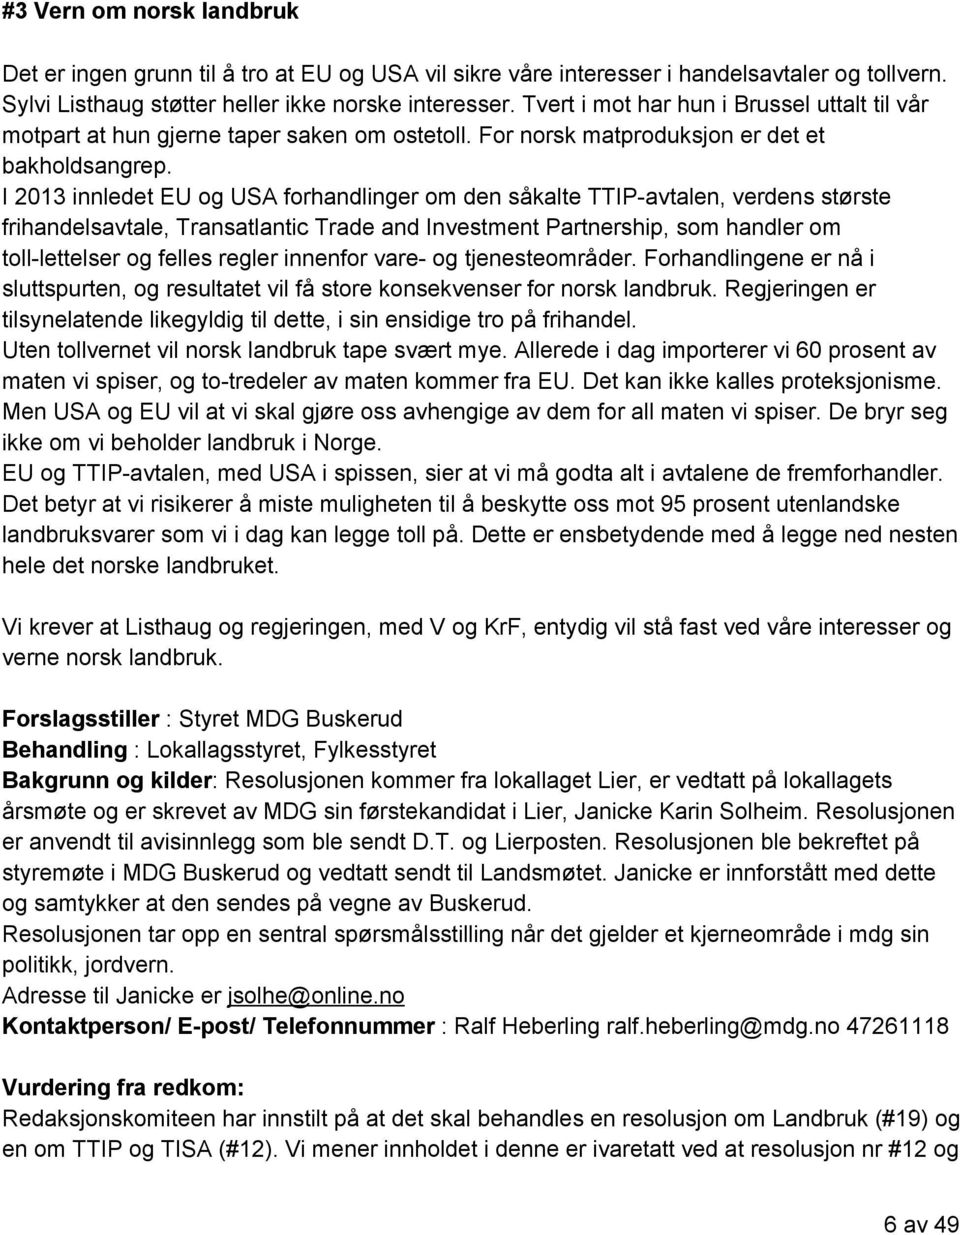 I 2013 innledet EU og USA forhandlinger om den såkalte TTIP avtalen, verdens største frihandelsavtale, Transatlantic Trade and Investment Partnership, som handler om toll lettelser og felles regler